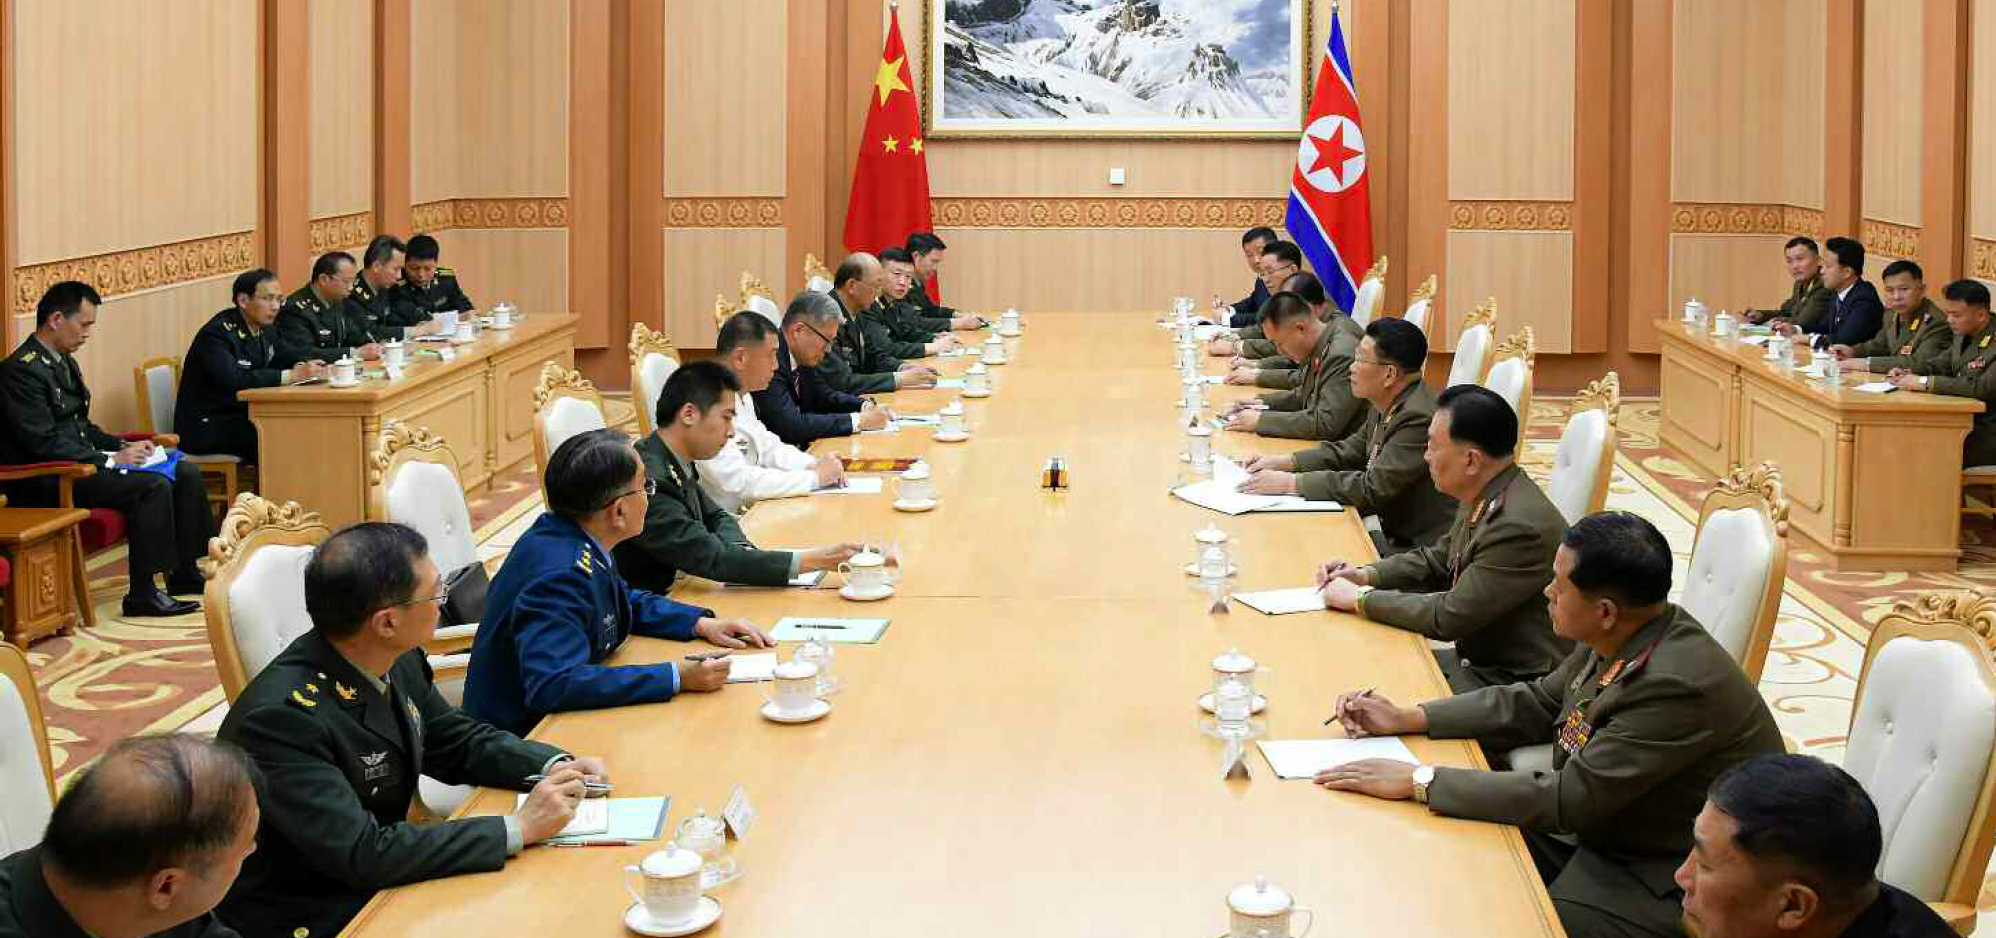 China, North Korea hold high-level military talks in Pyongyang